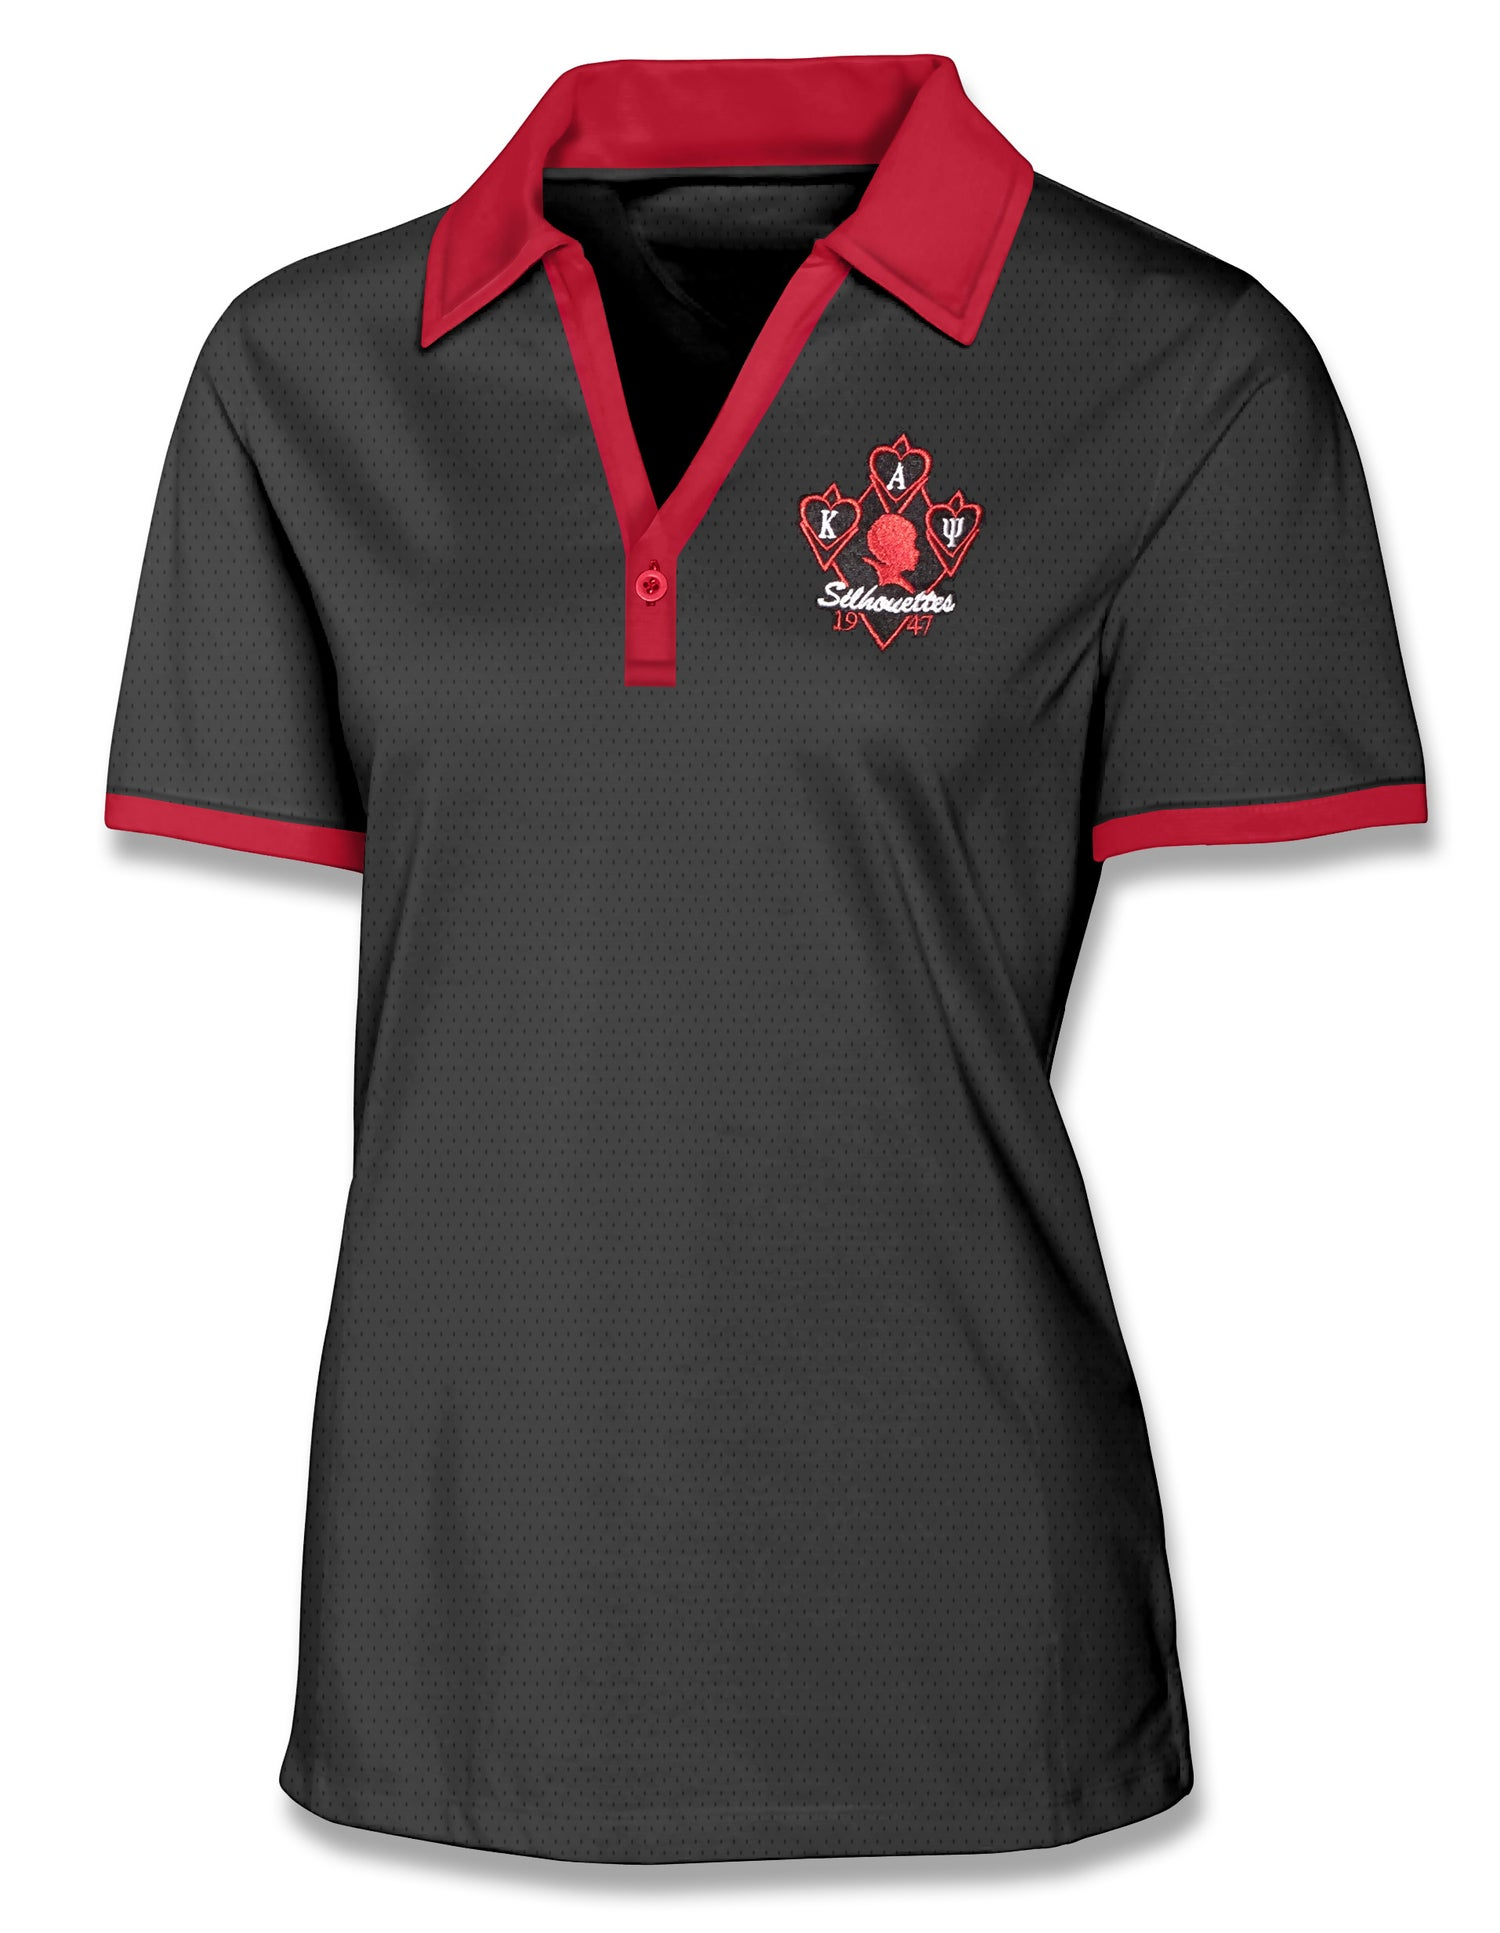 Image of Silhouette Moisture Wicking One Button Golf Polo (Black w/Red Accents)